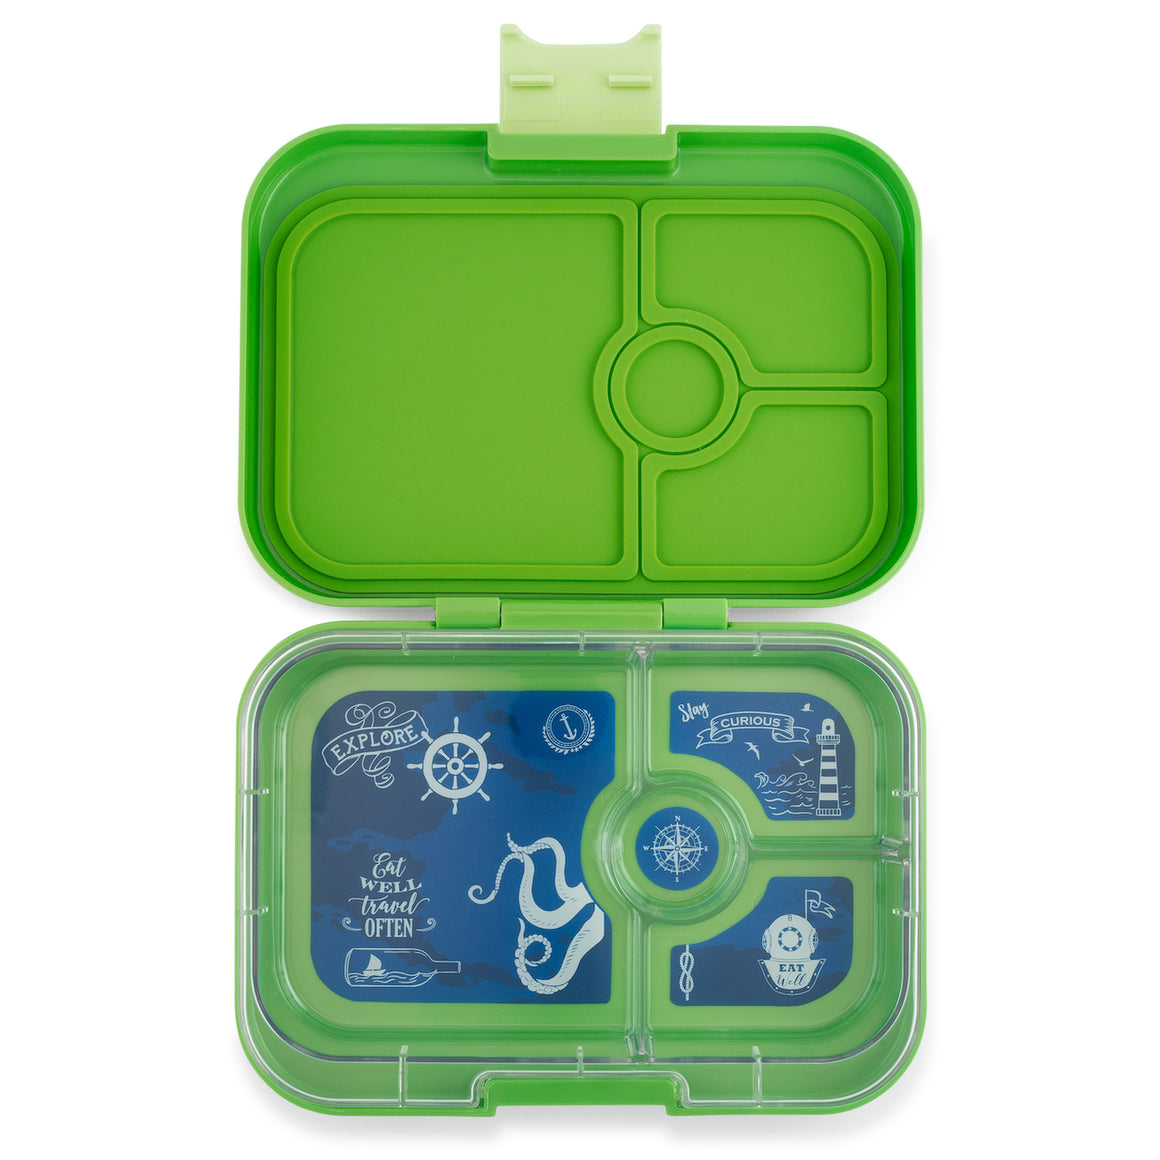 Yumbox Panino Bento Lunchbox (4 Compartment) - Cilantro Green - PRE-ORDER NOW!